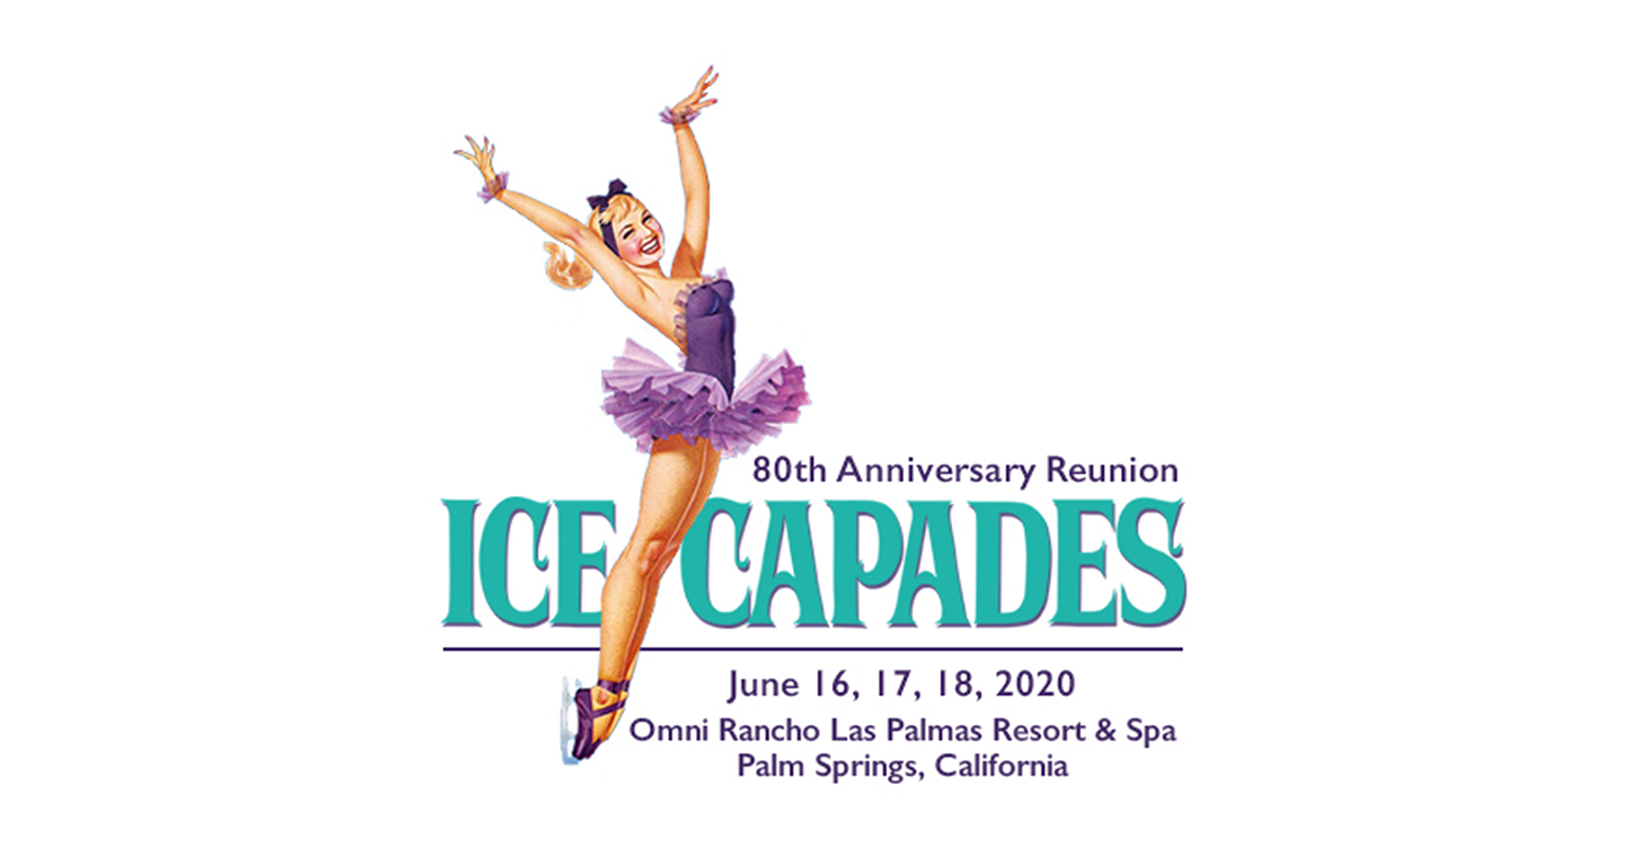 Ice Capades 2020 Reunion